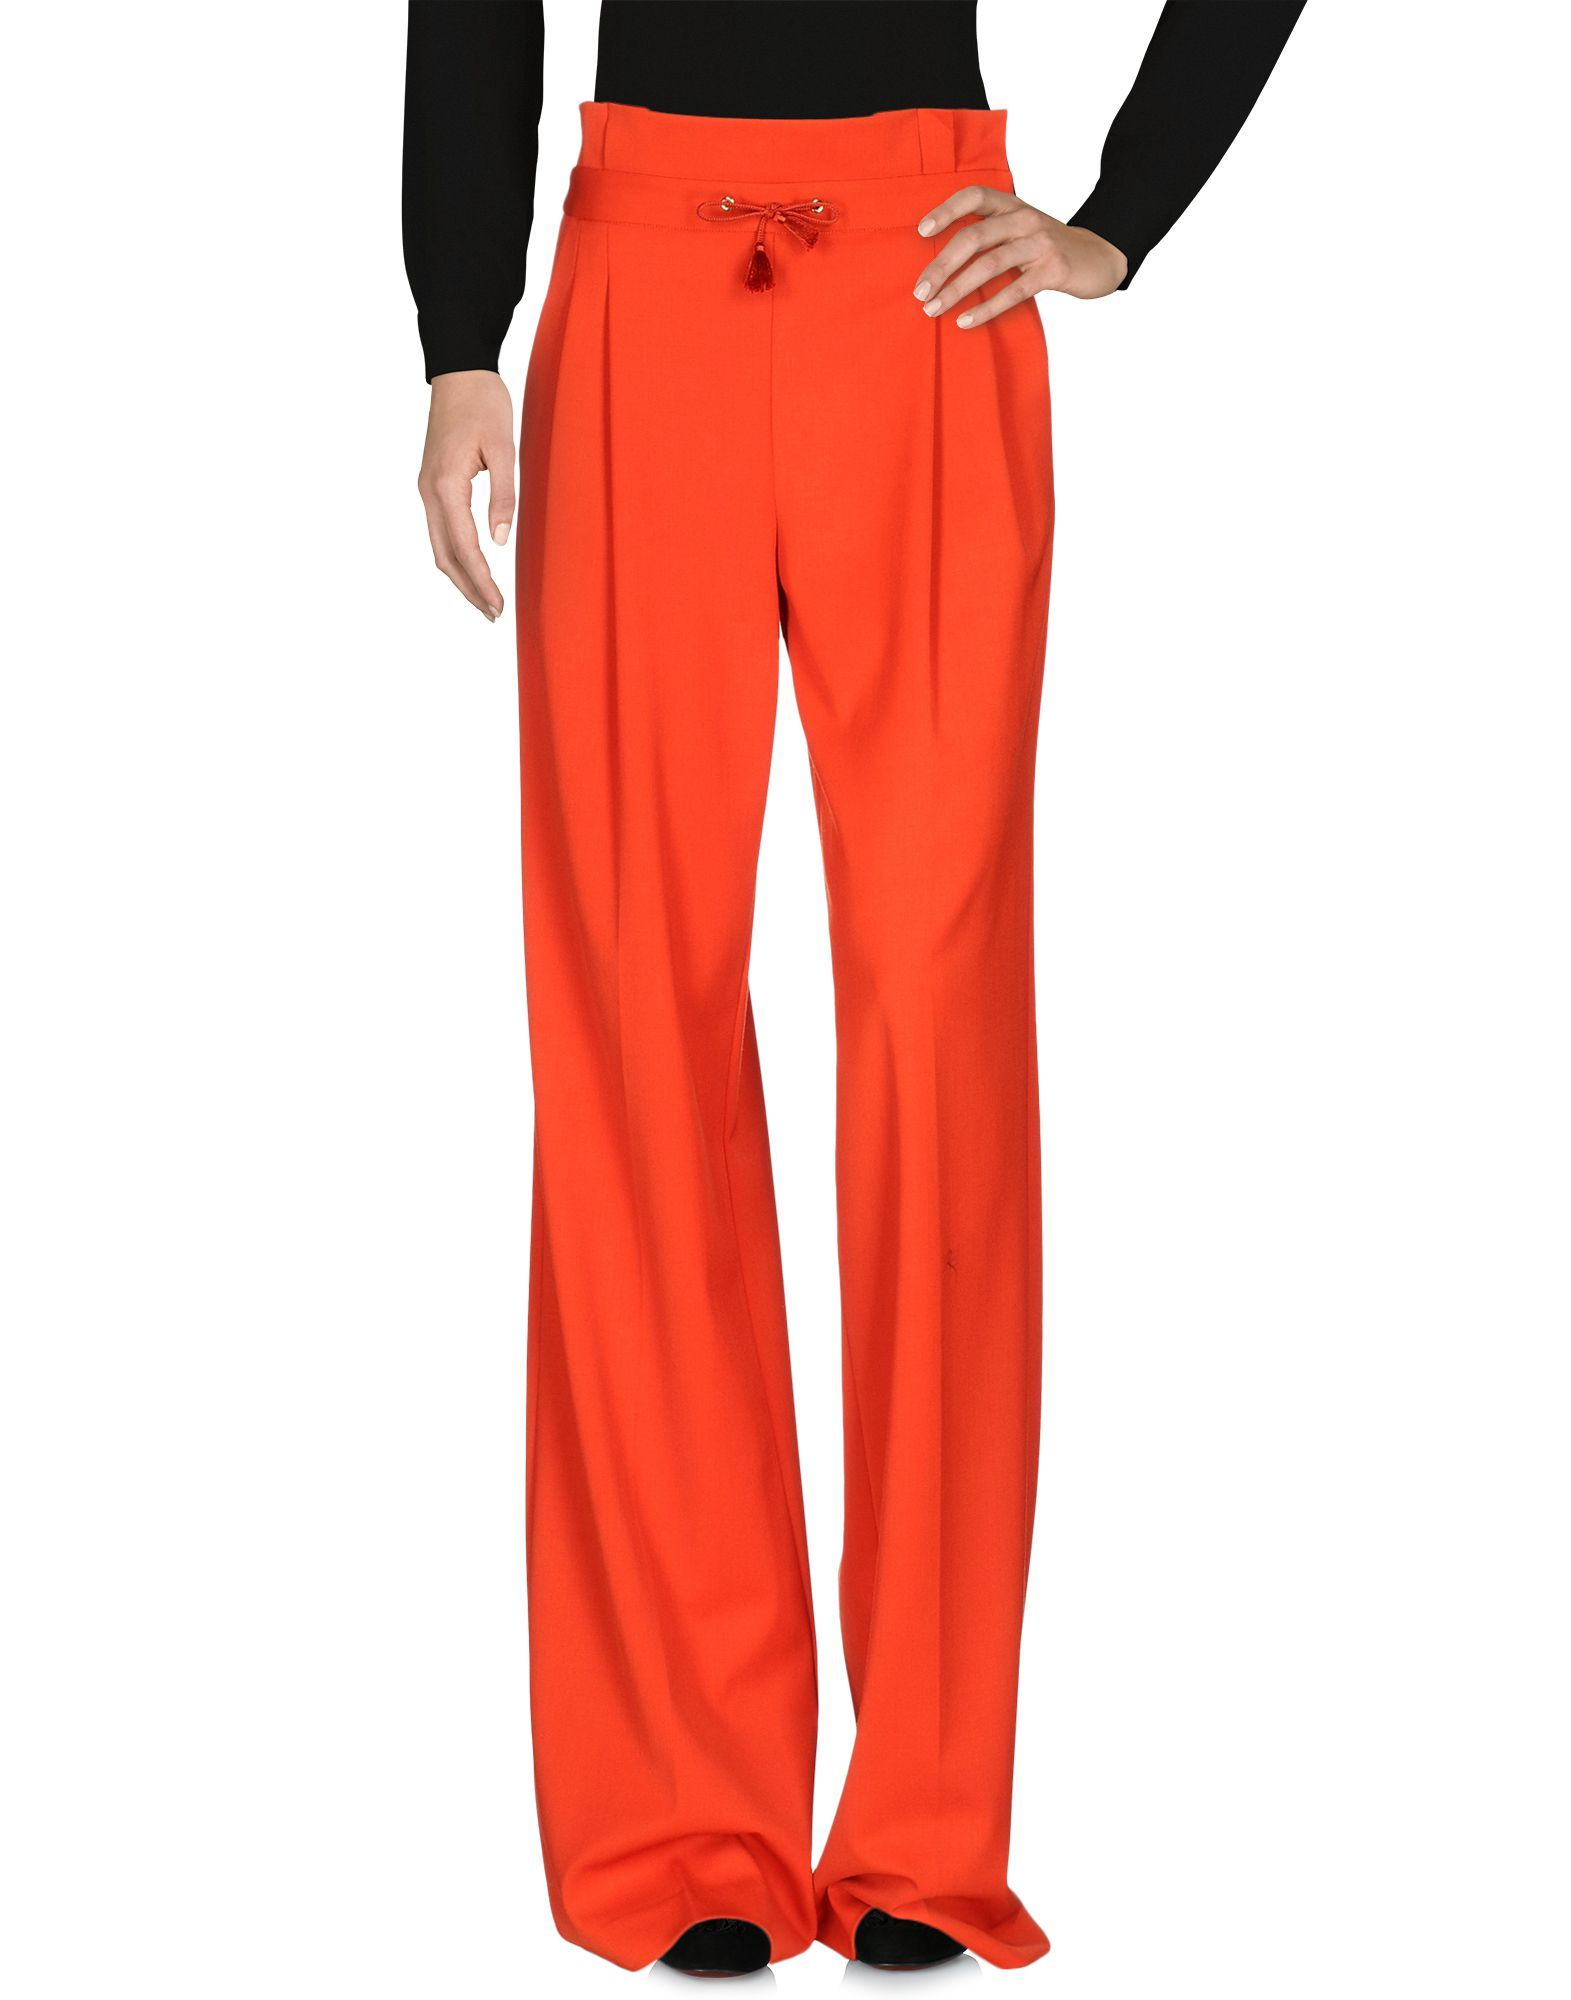 Mangano Red Wide Leg Trousers